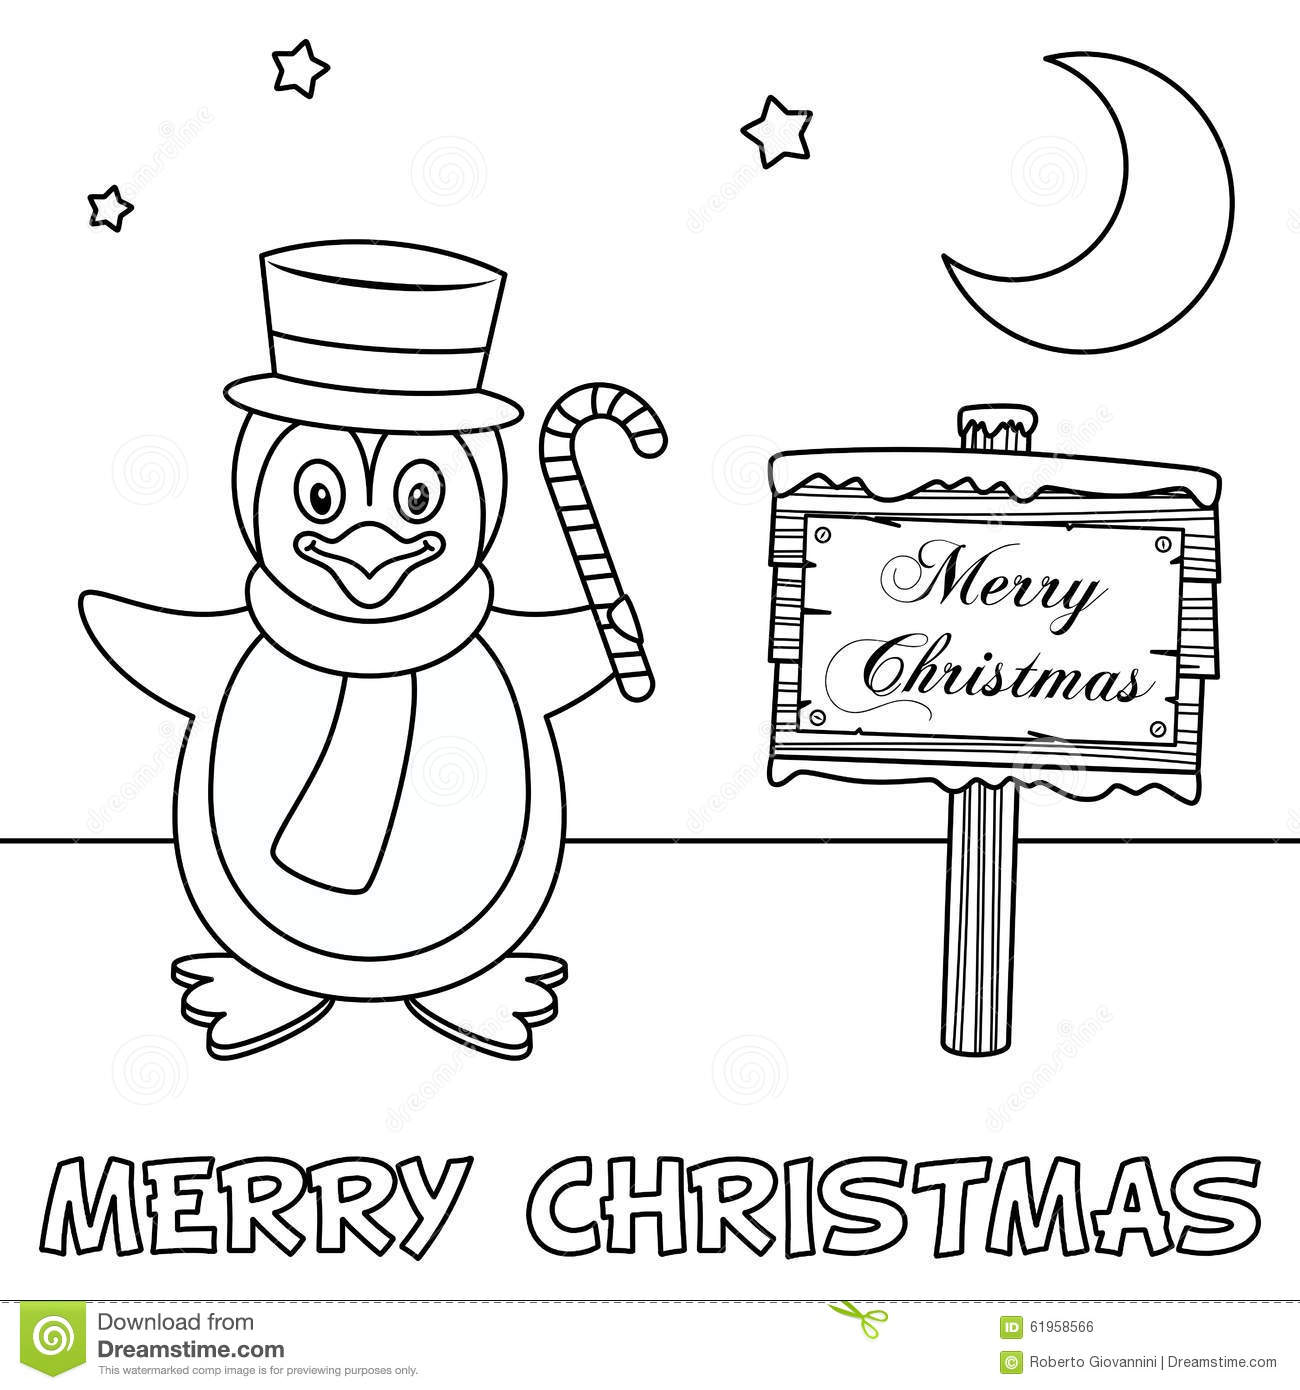 Coloring Christmas Card With Penguin Stock Vector